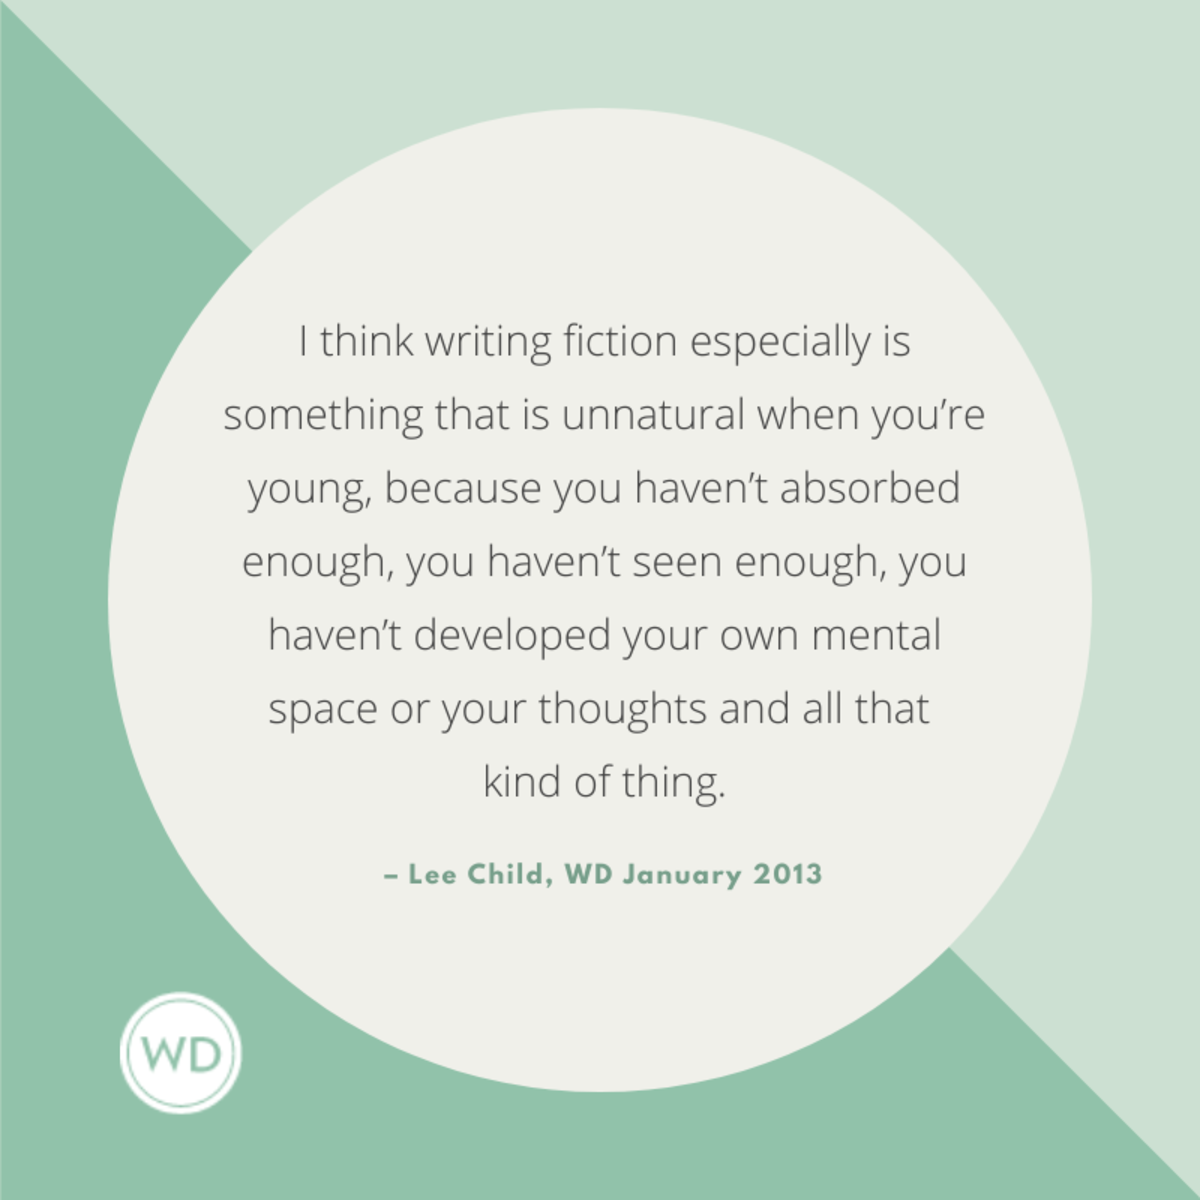 Lee Child quotes about writing